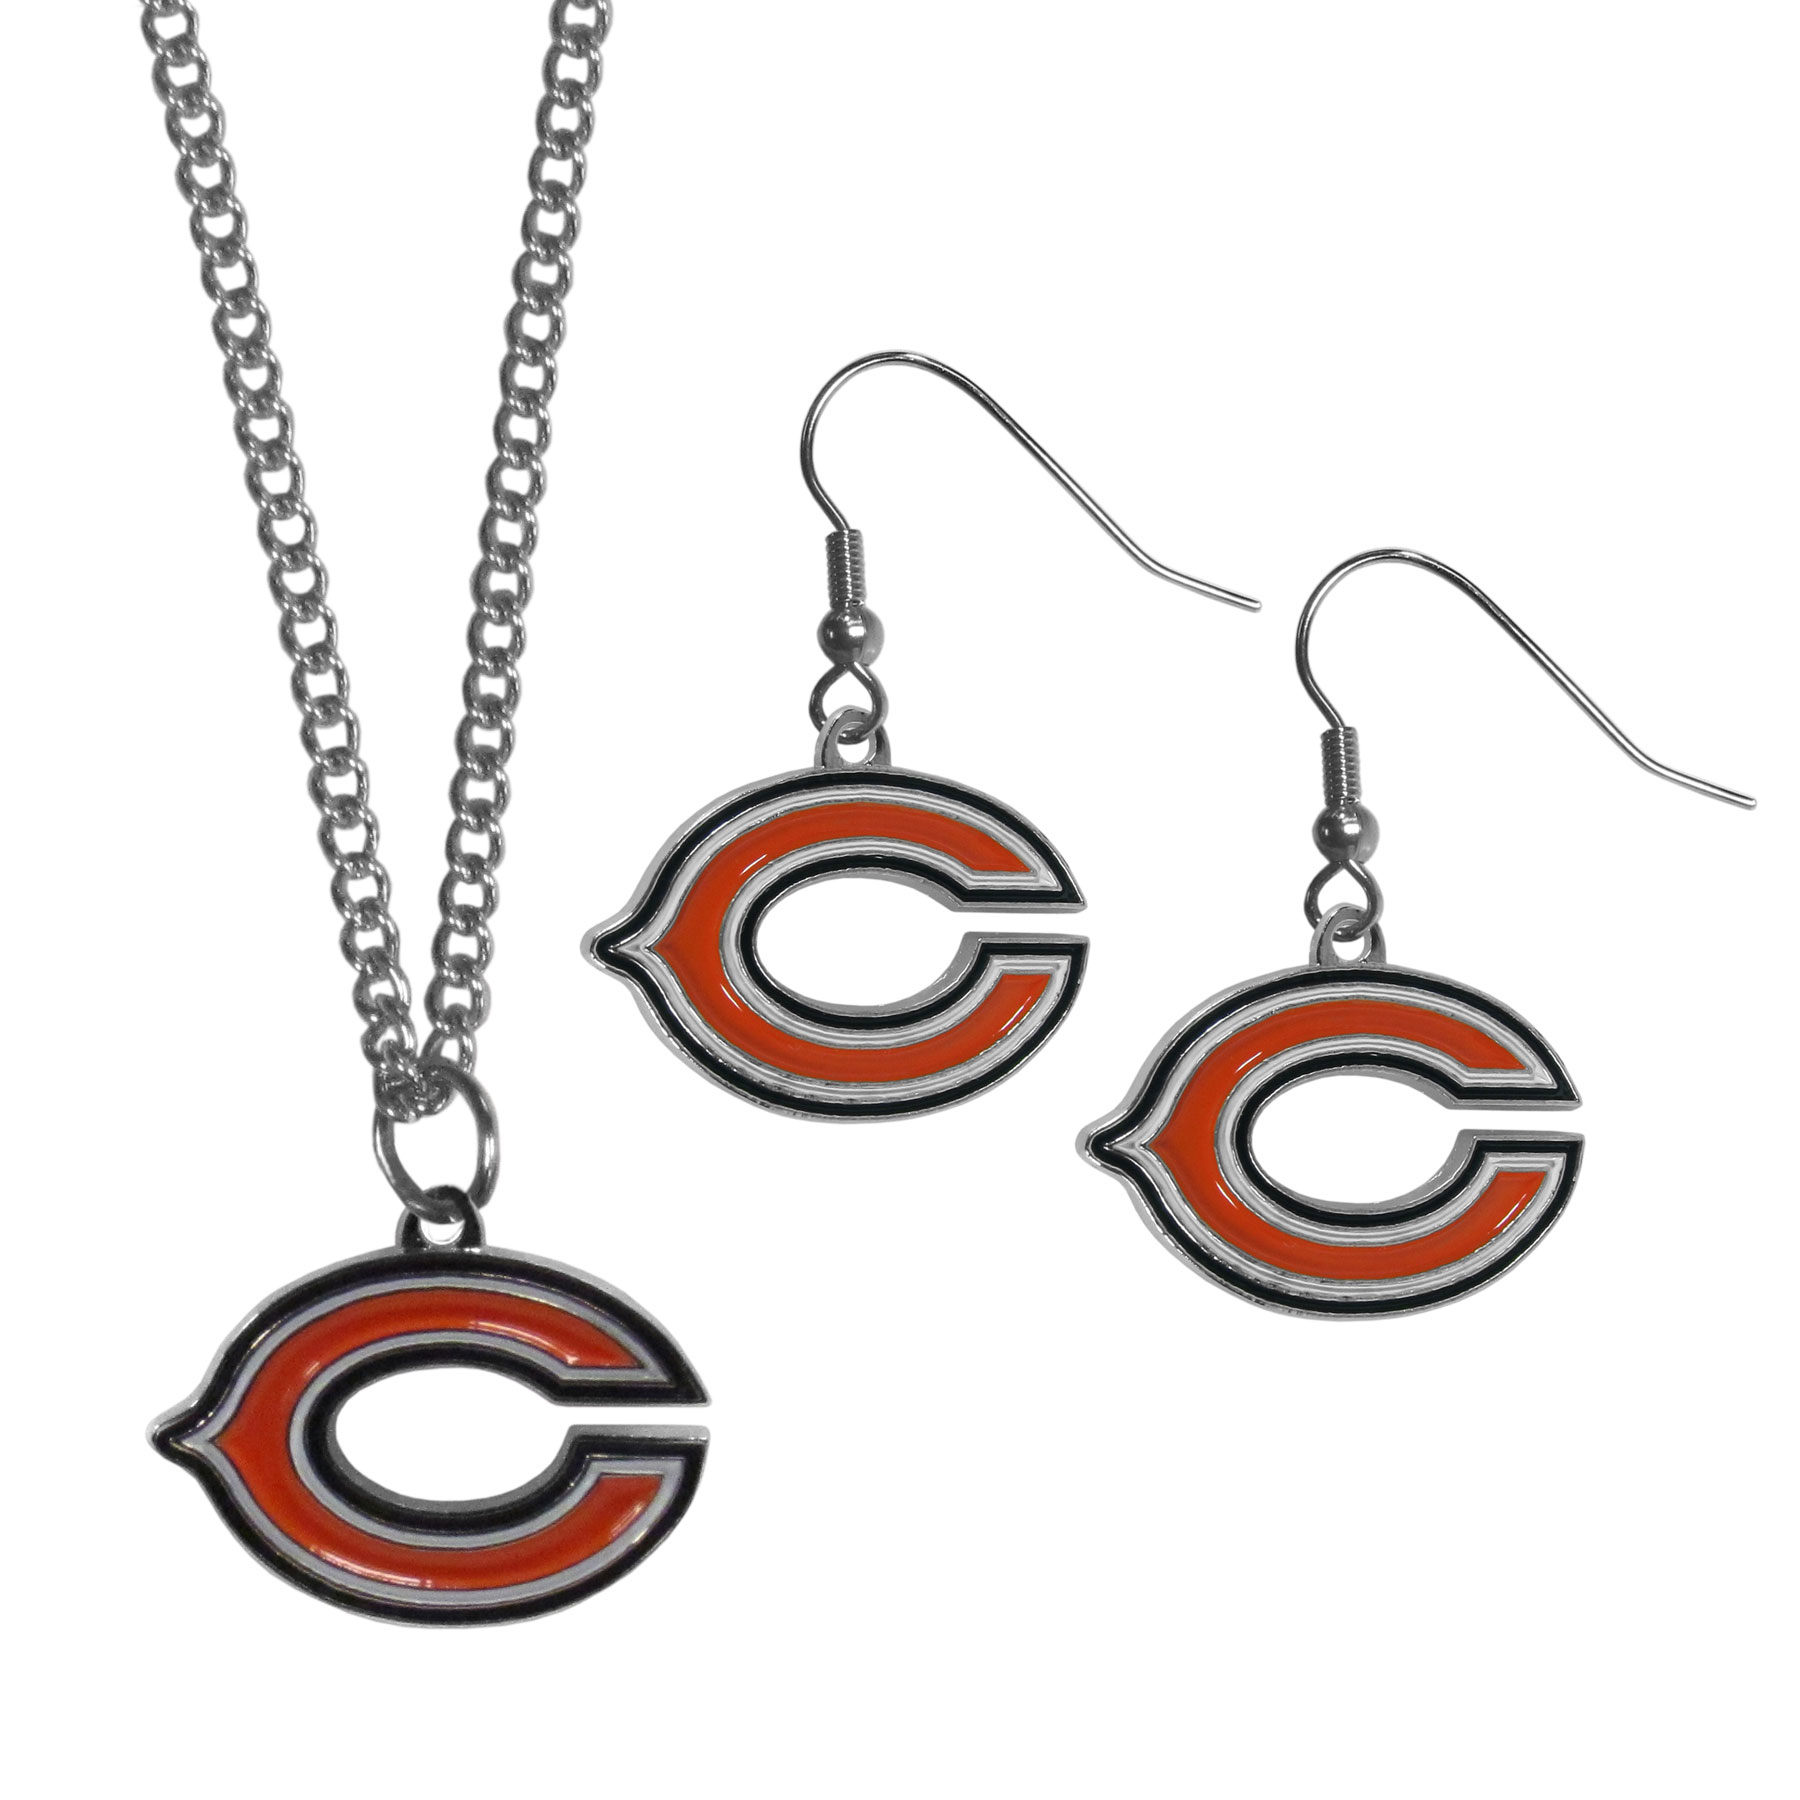 Chicago Bears Dangle Earrings and Chain Necklace Set - This classic jewelry set contains are most popular Chicago Bears dangle earrings and 22 inch chain necklace. The trendy, dangle earrings are lightweight and feature a fully cast metal team charm with enameled team colors. The matching necklace completes this fashion forward combo and is a spirited set that is perfect for game day but nice enough for everyday.